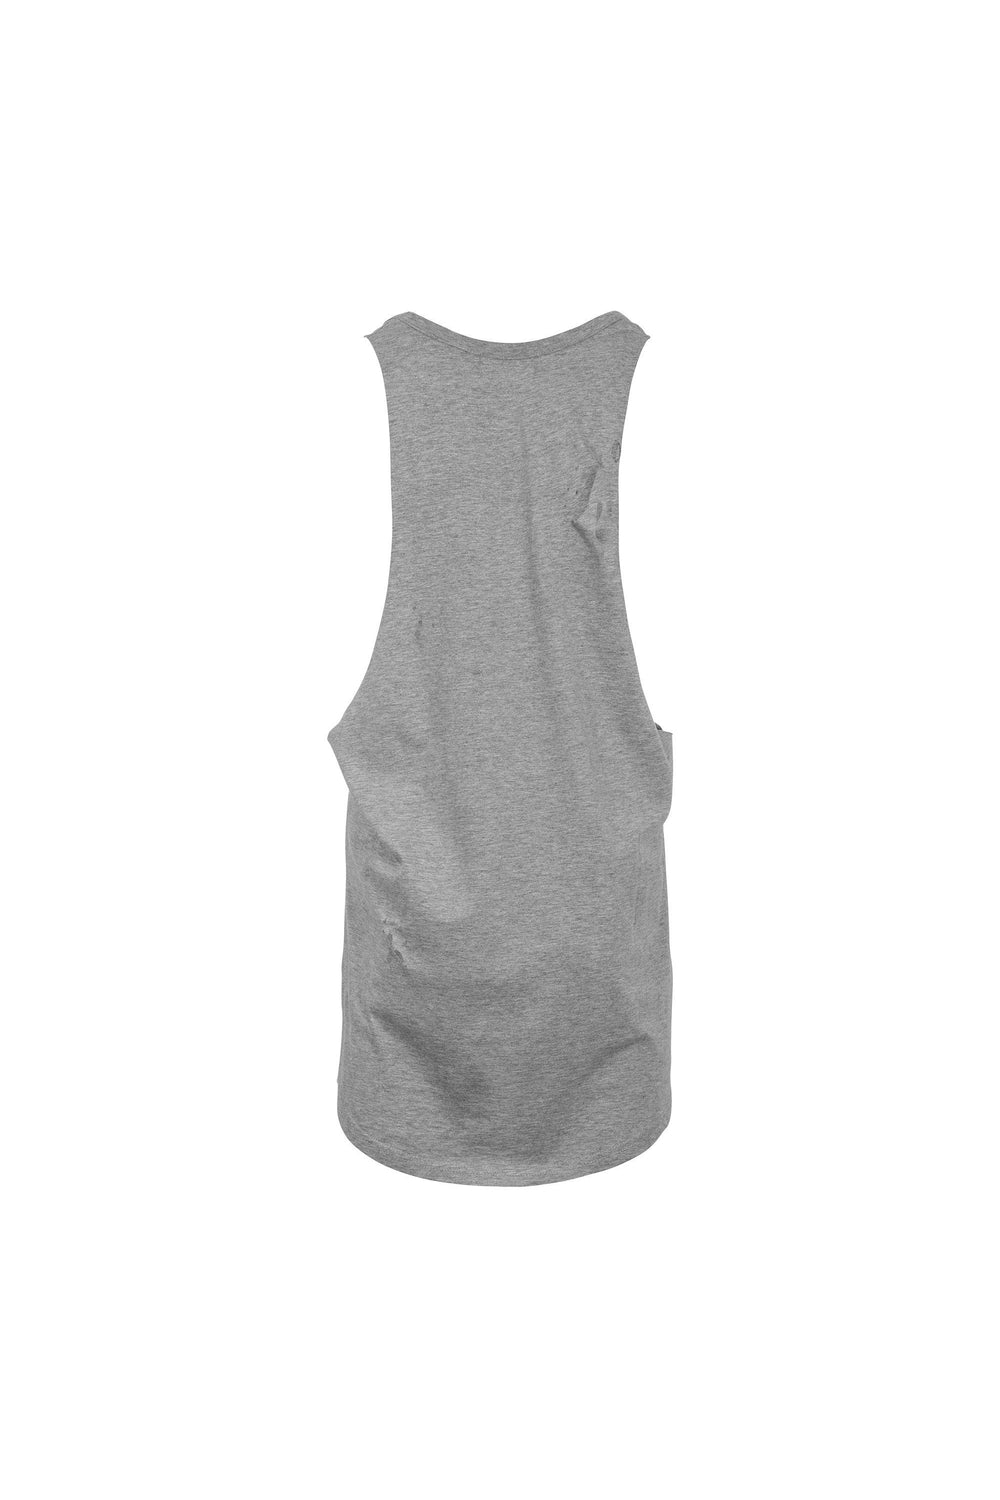 Vests - Destroyed Vest Grey